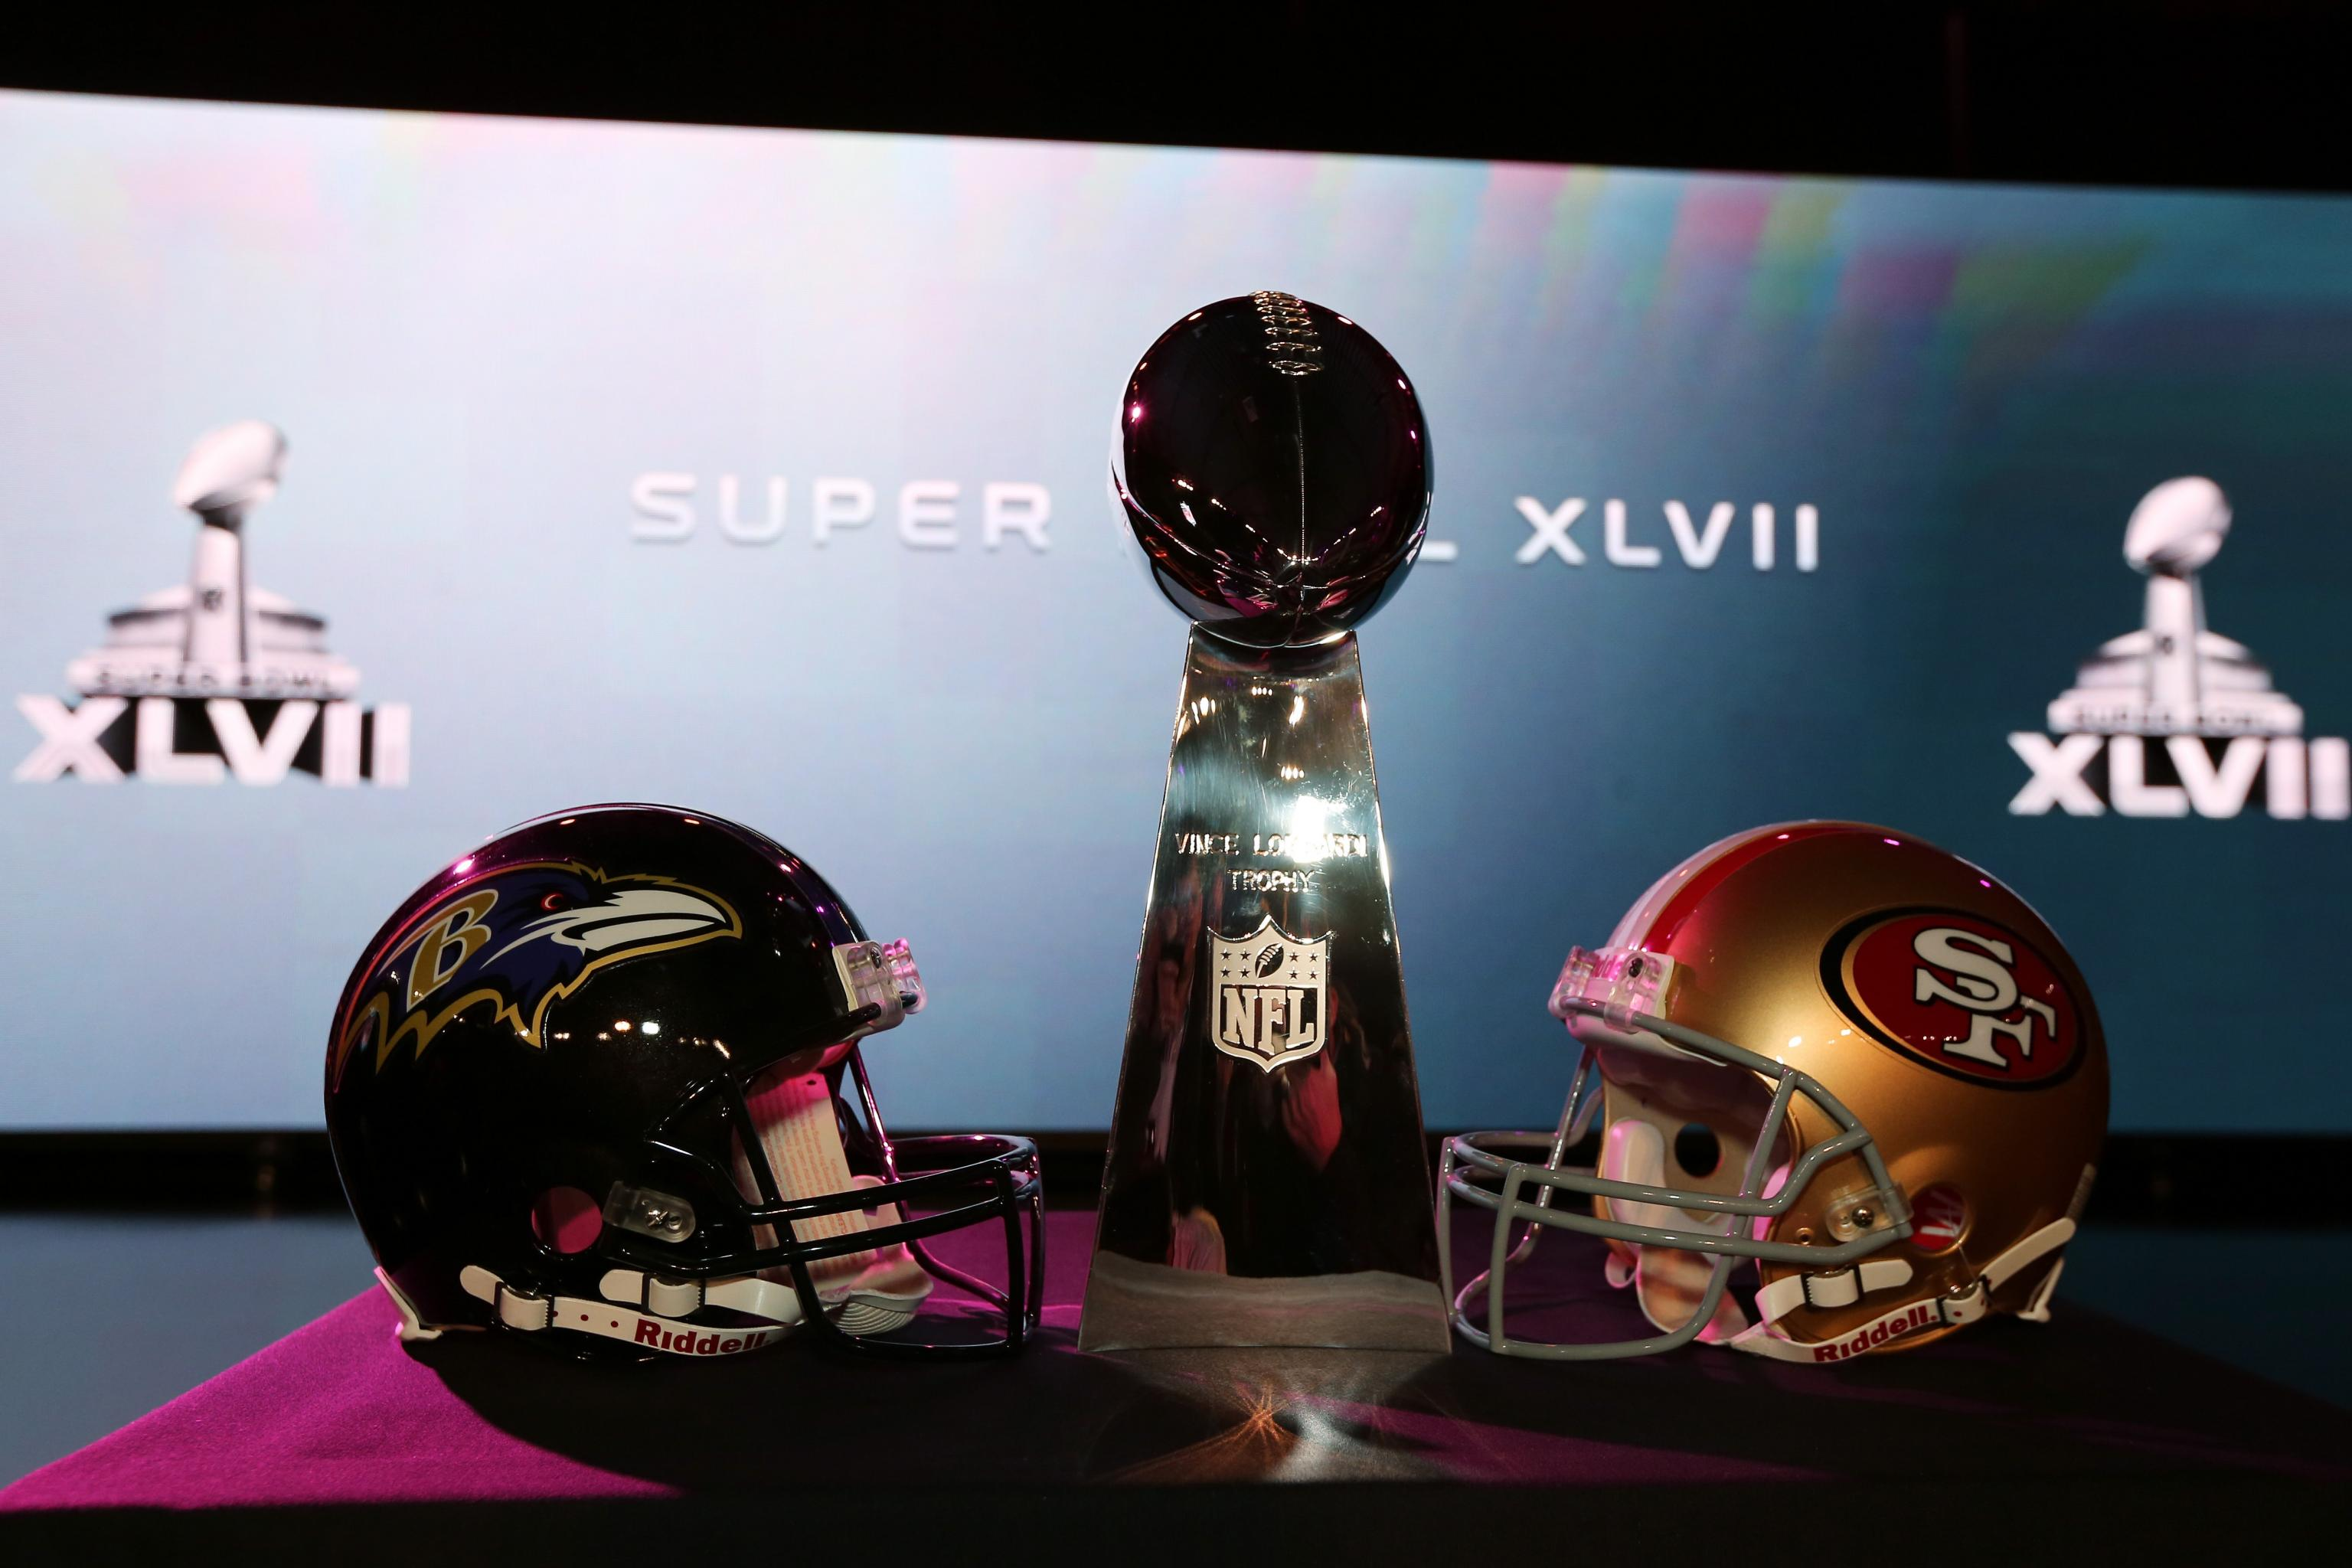 funny things to bet on for the super bowl 2013